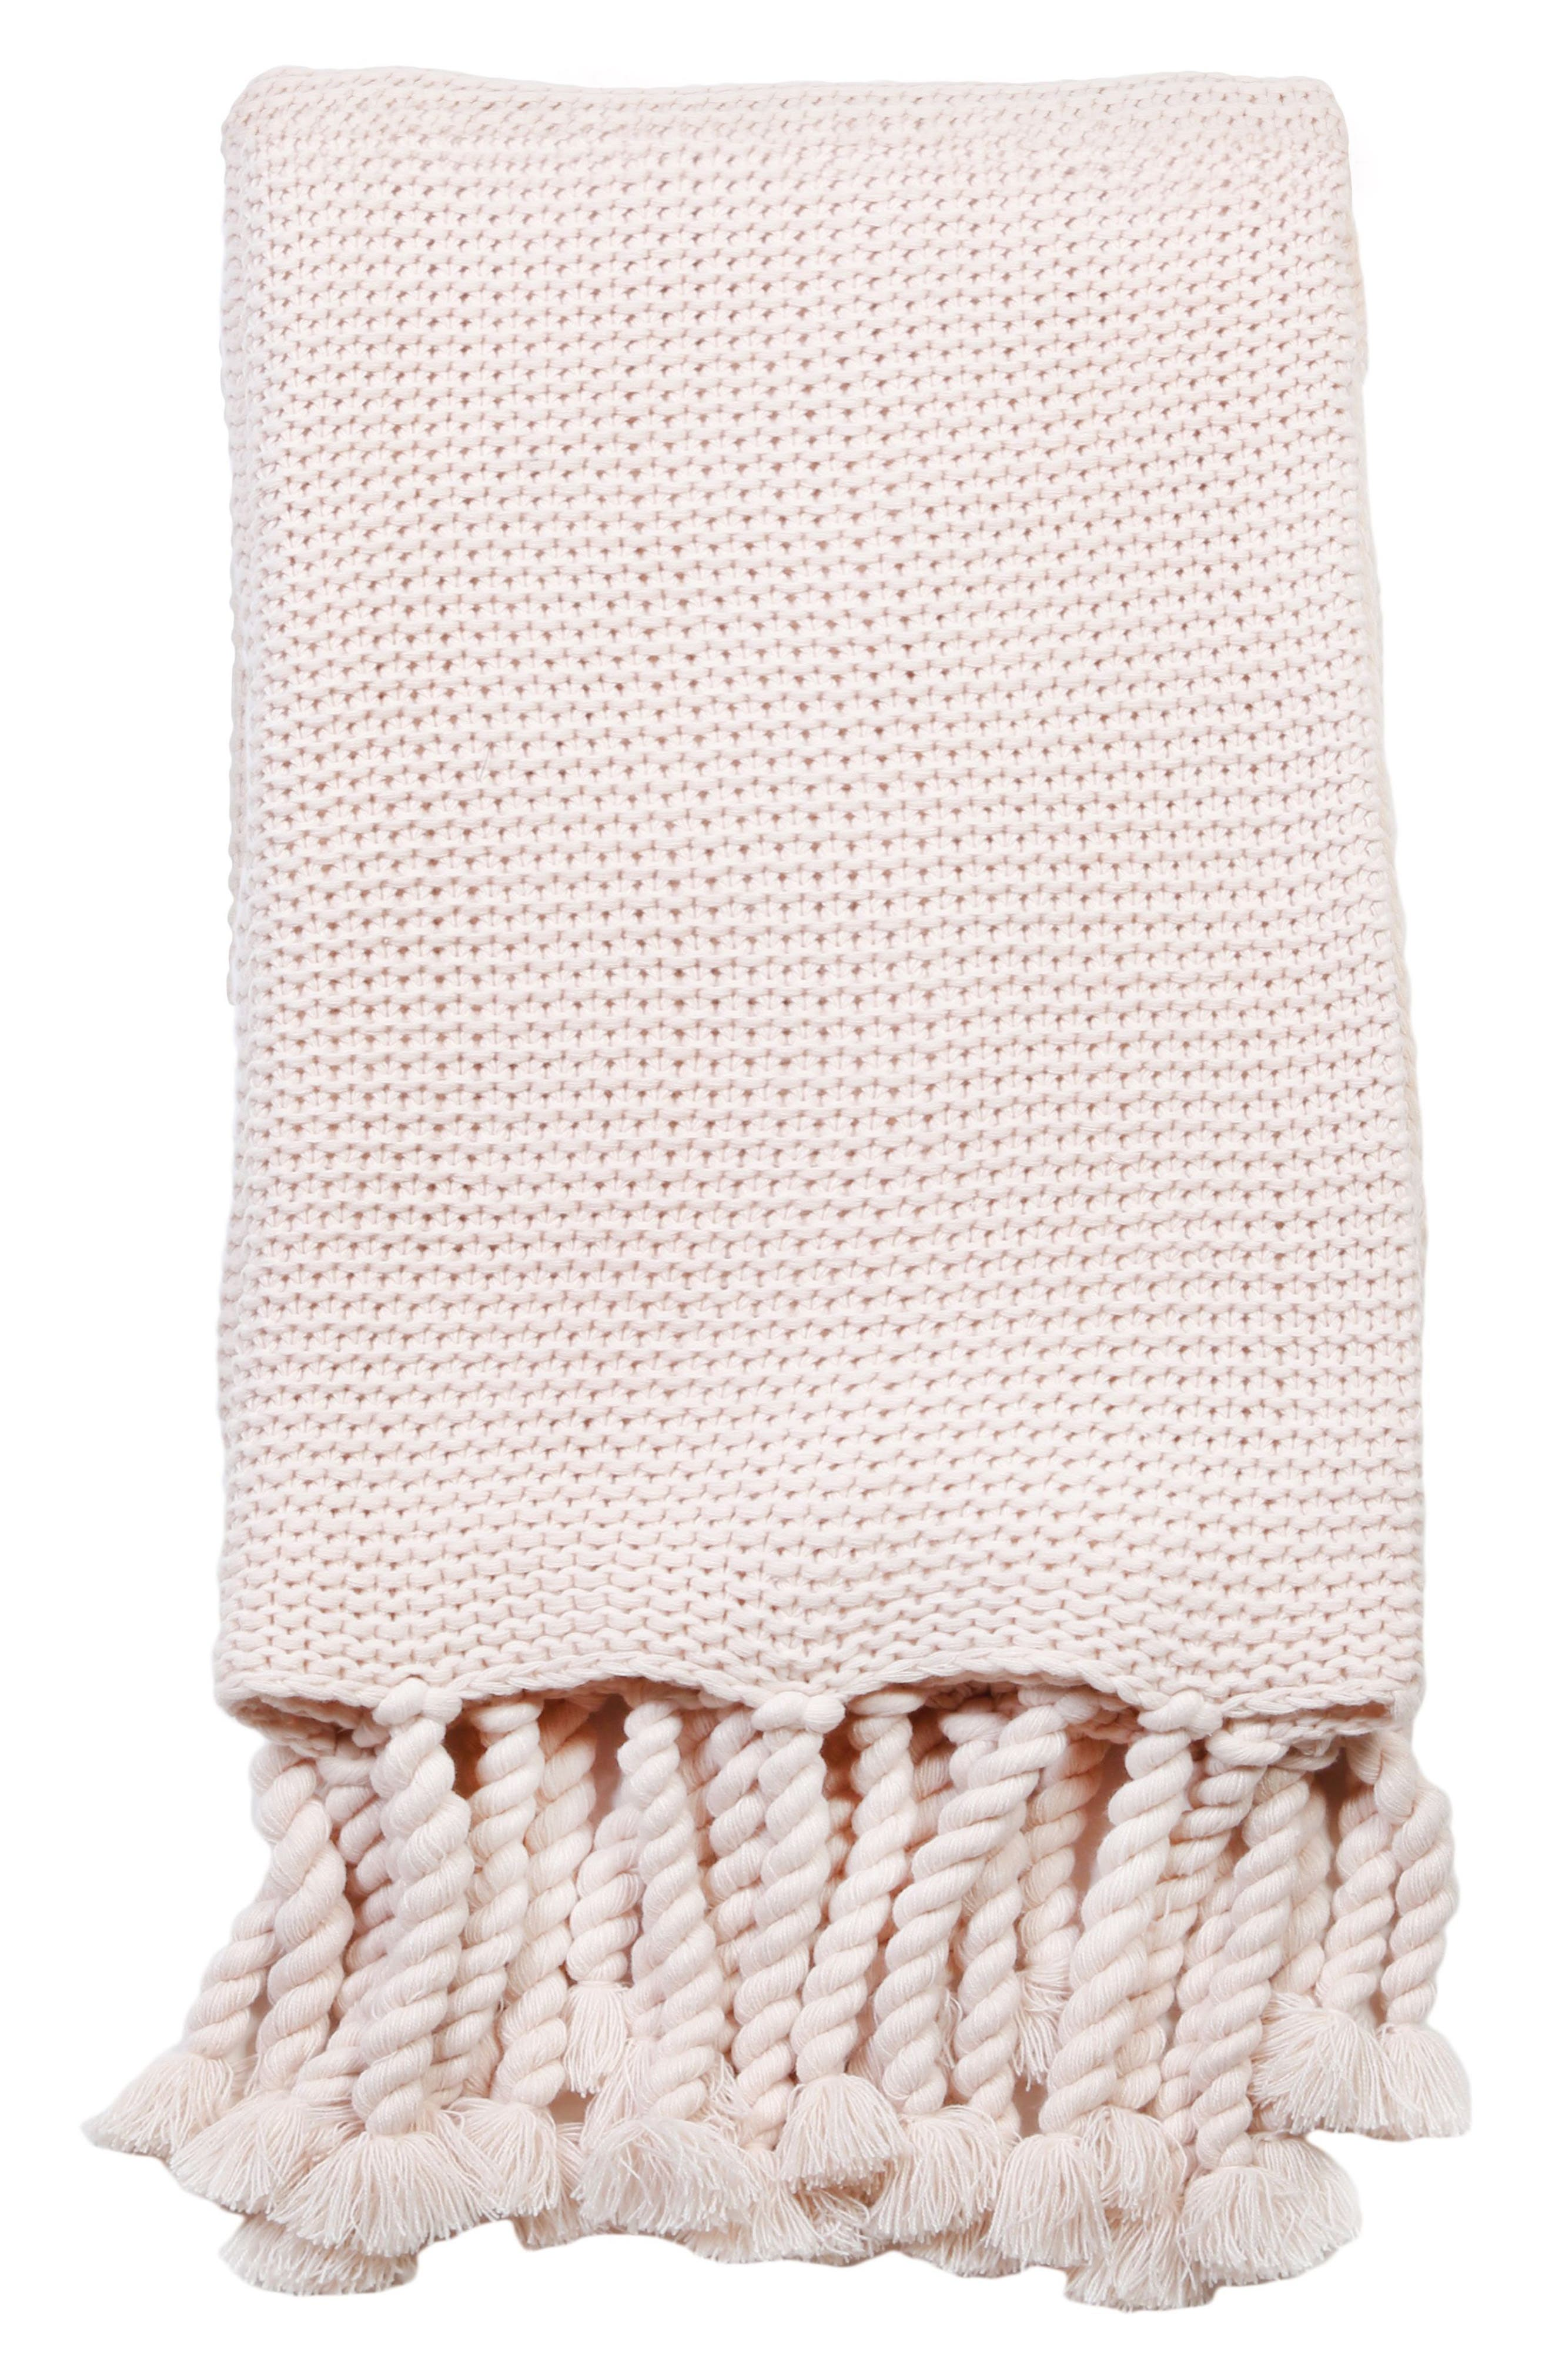 Trestles Oversize Throw Blanket,                             Main thumbnail 1, color,                             Blush